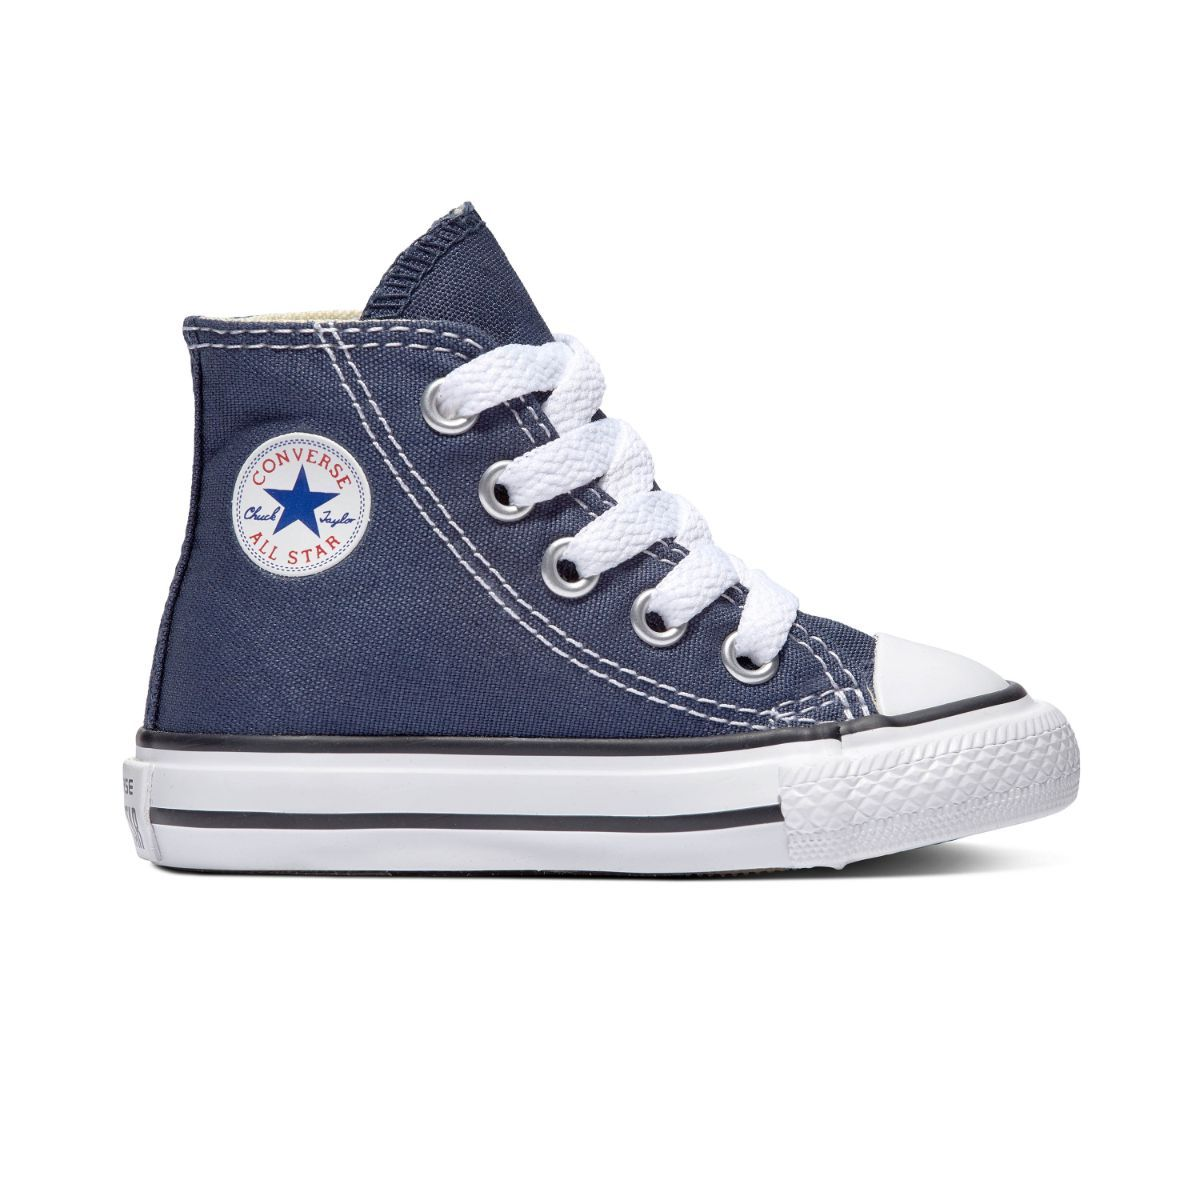 Toddler Chuck Taylor All Star Navy High Top